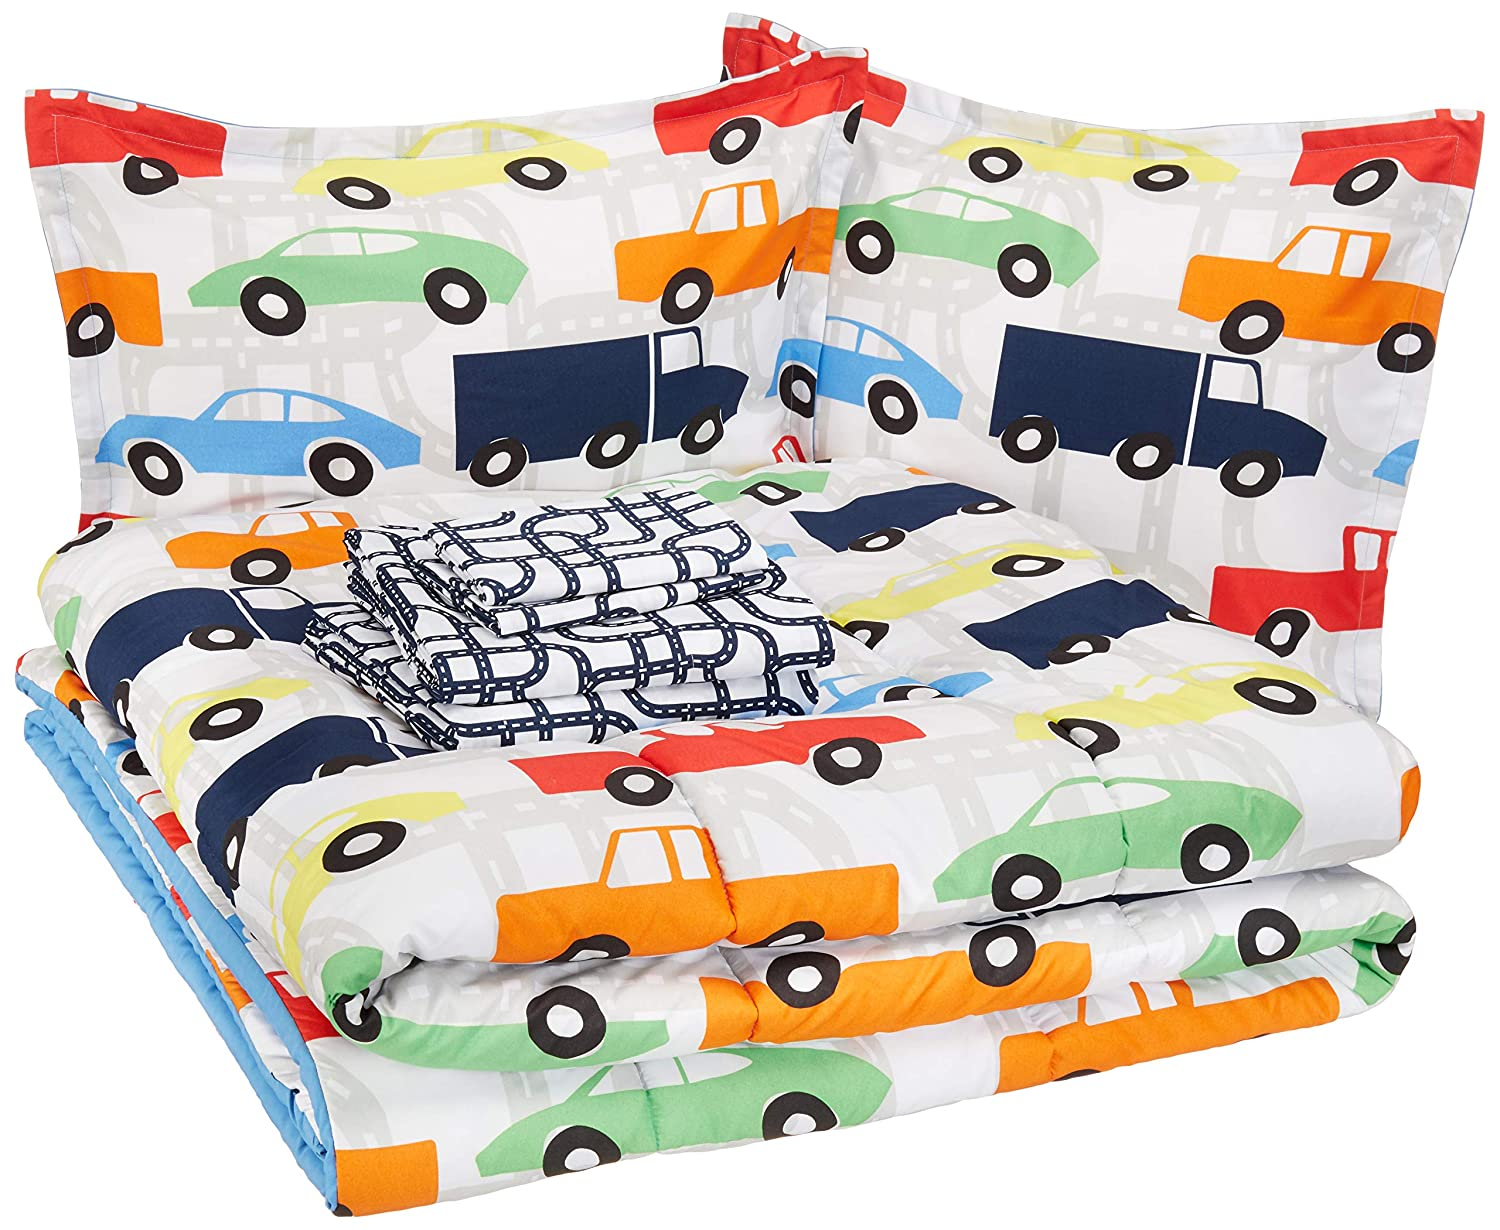 AmazonBasics Kid's Bed-in-a-Bag - Soft, Easy-Wash Microfiber - Full/Queen, Multi-Color Racing Cars